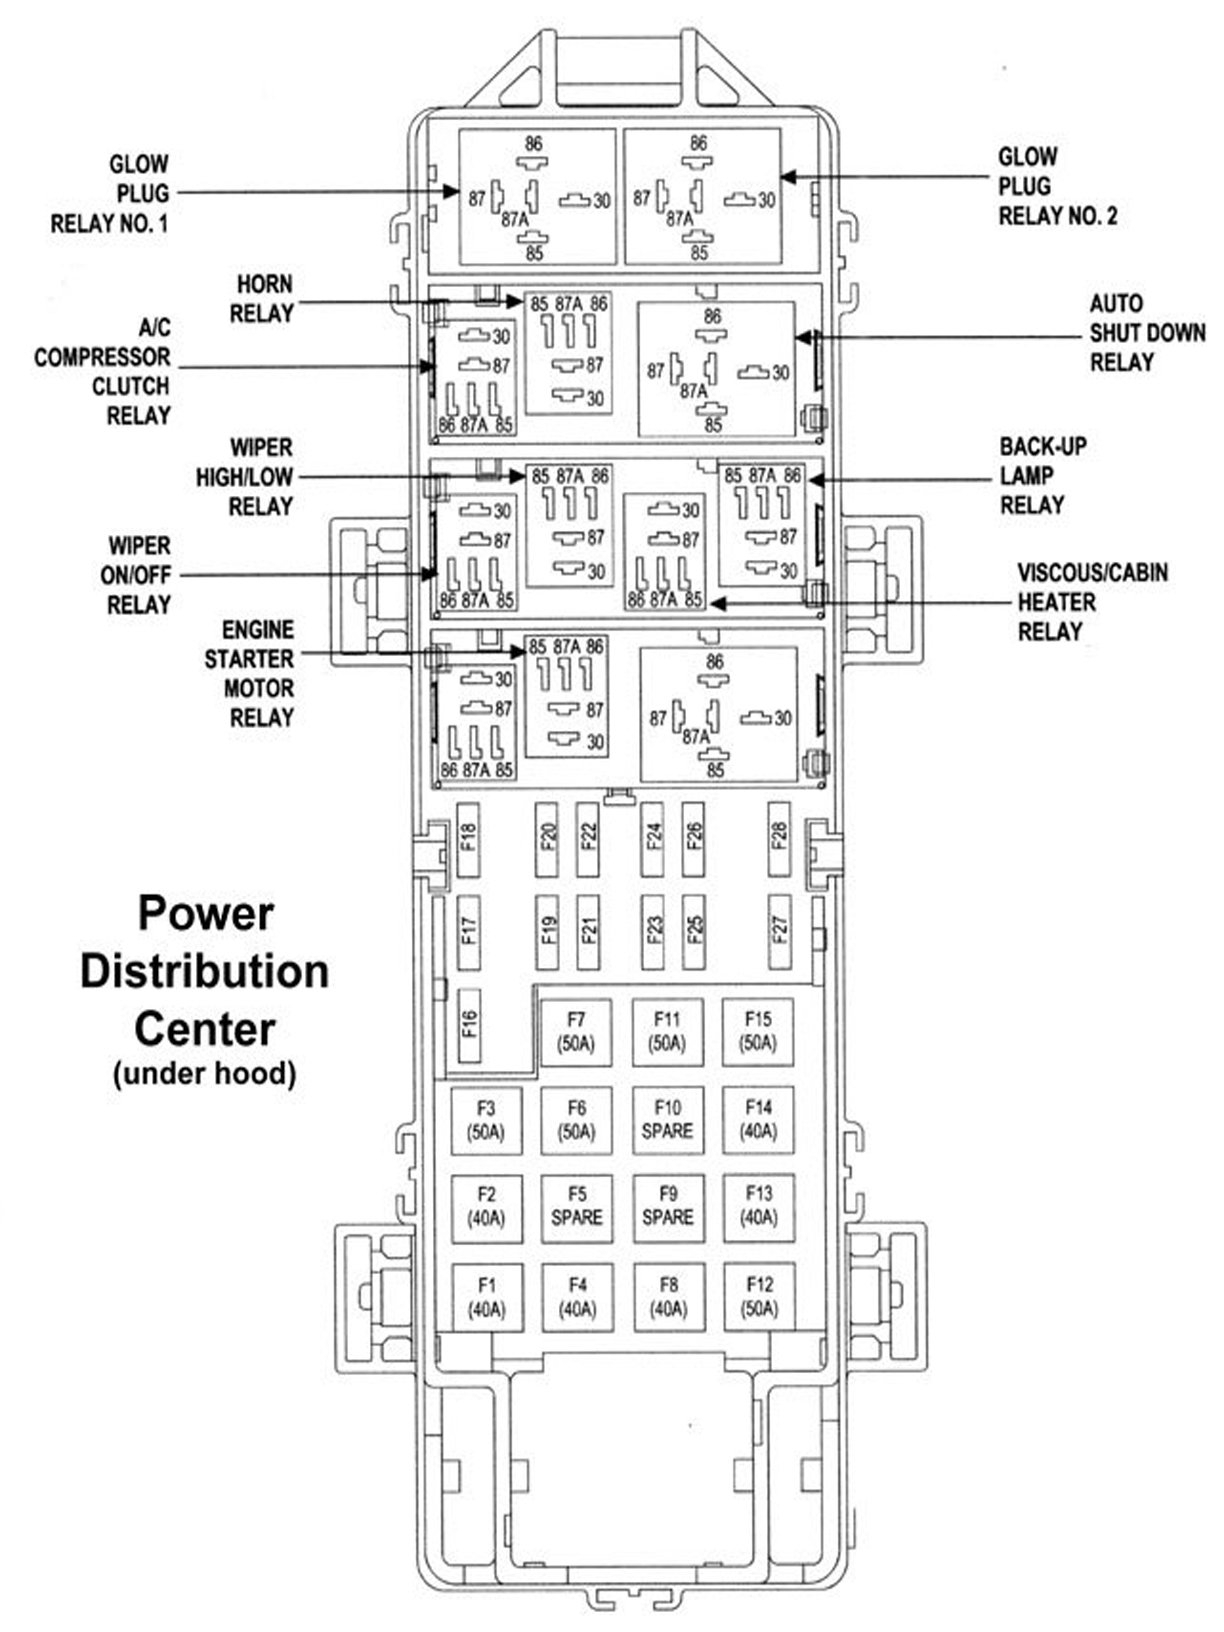 Jeep Grand Cherokee Wj 1999 To 2004 Fuse Box Diagram - Cherokeeforum intended for 1998 Jeep Grand Cherokee Parts Diagram